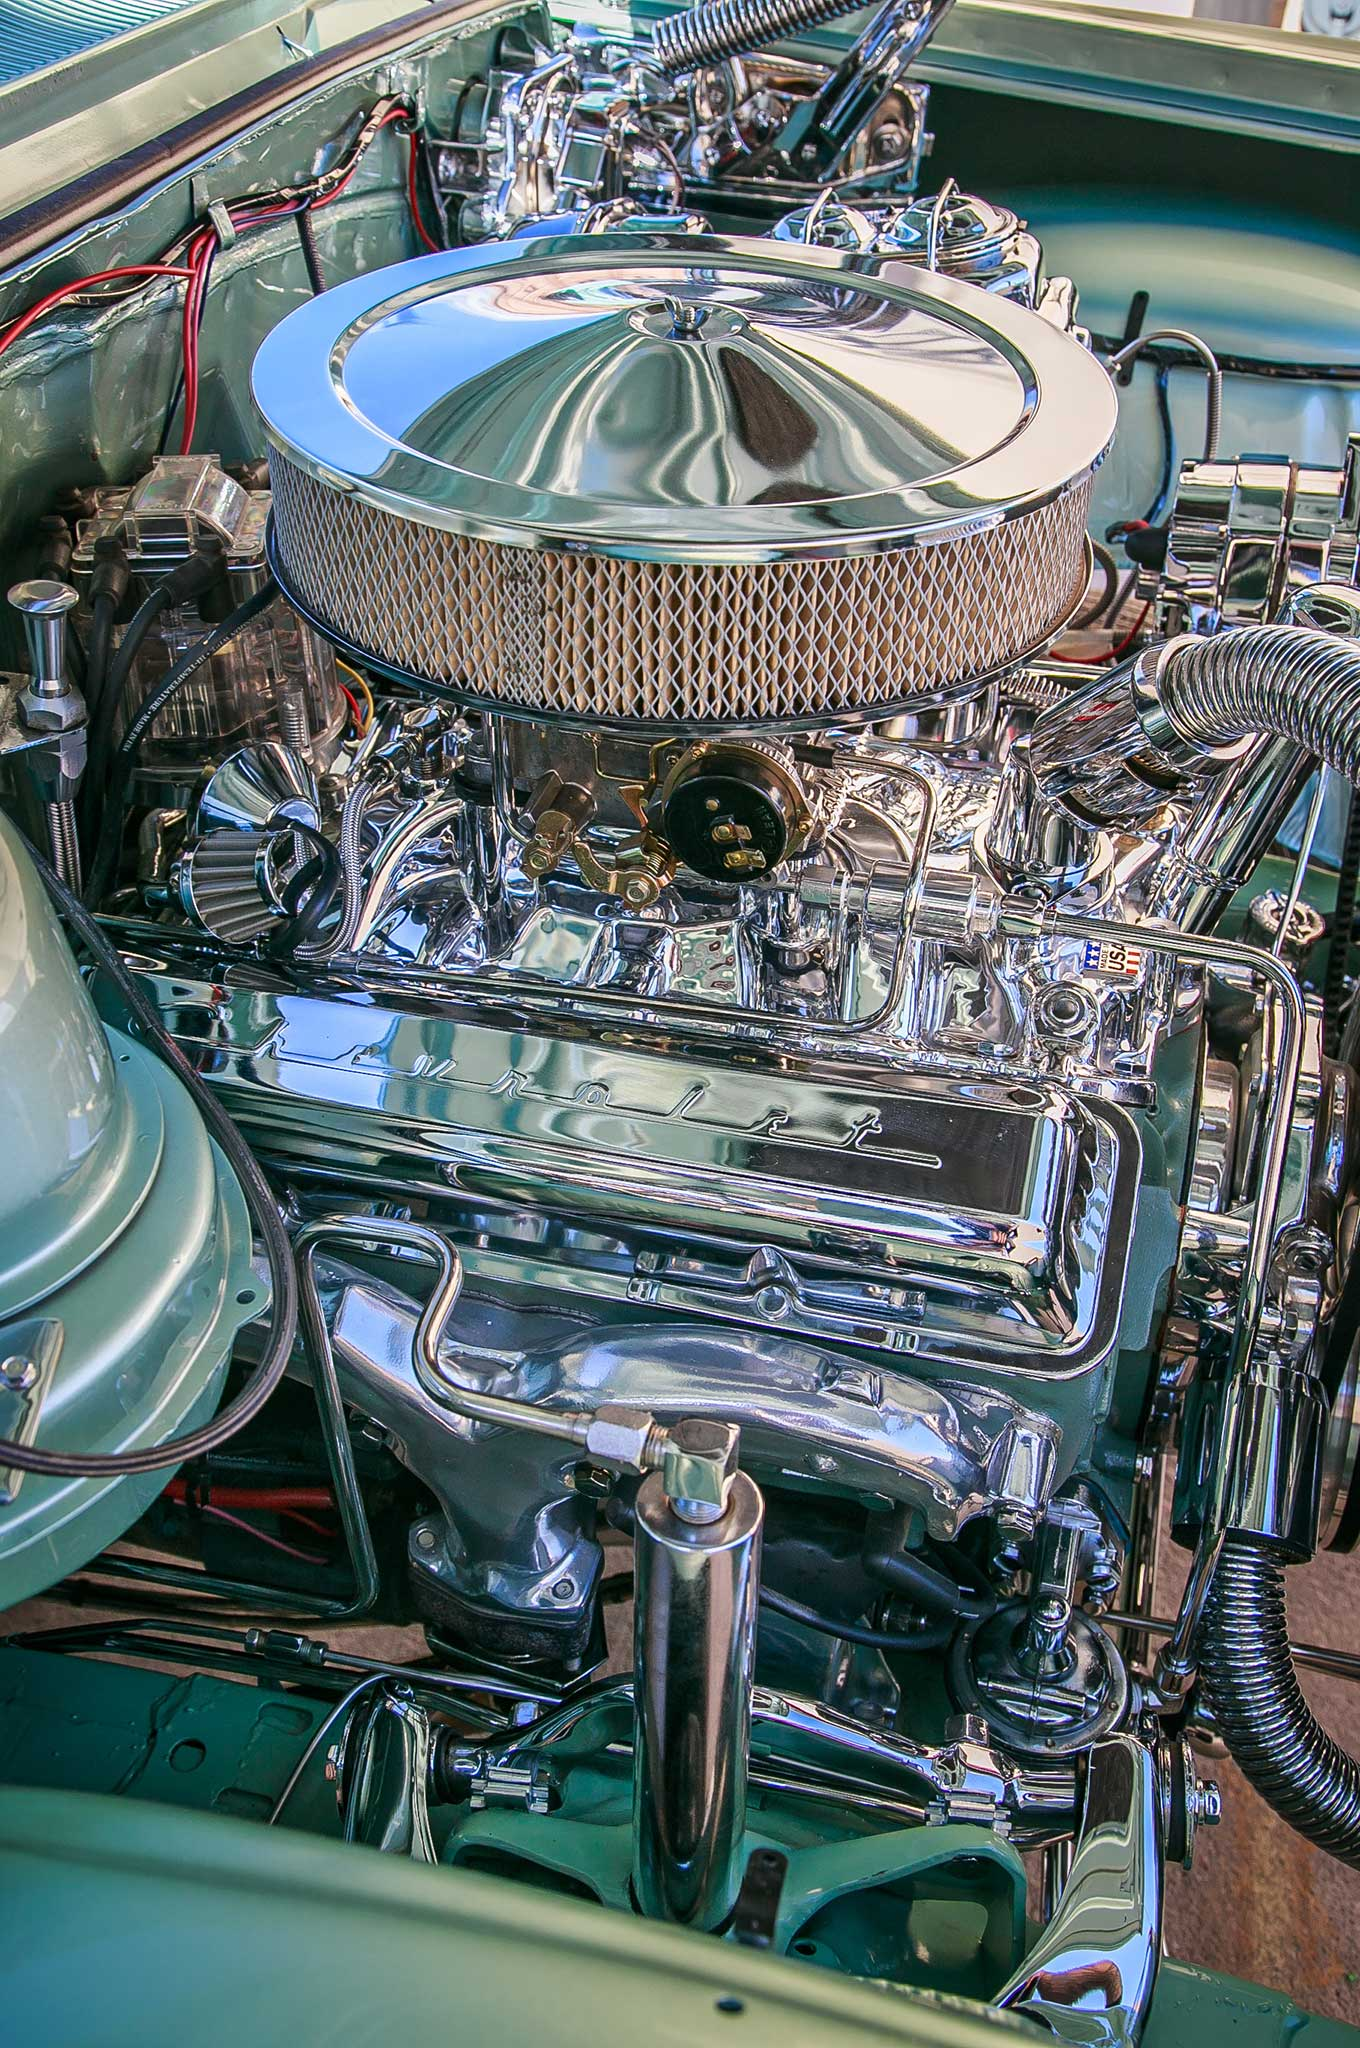 350 crate engine diagram chevy chrome motor wiring schematic diagram www diddlhausen  chevy chrome motor wiring schematic